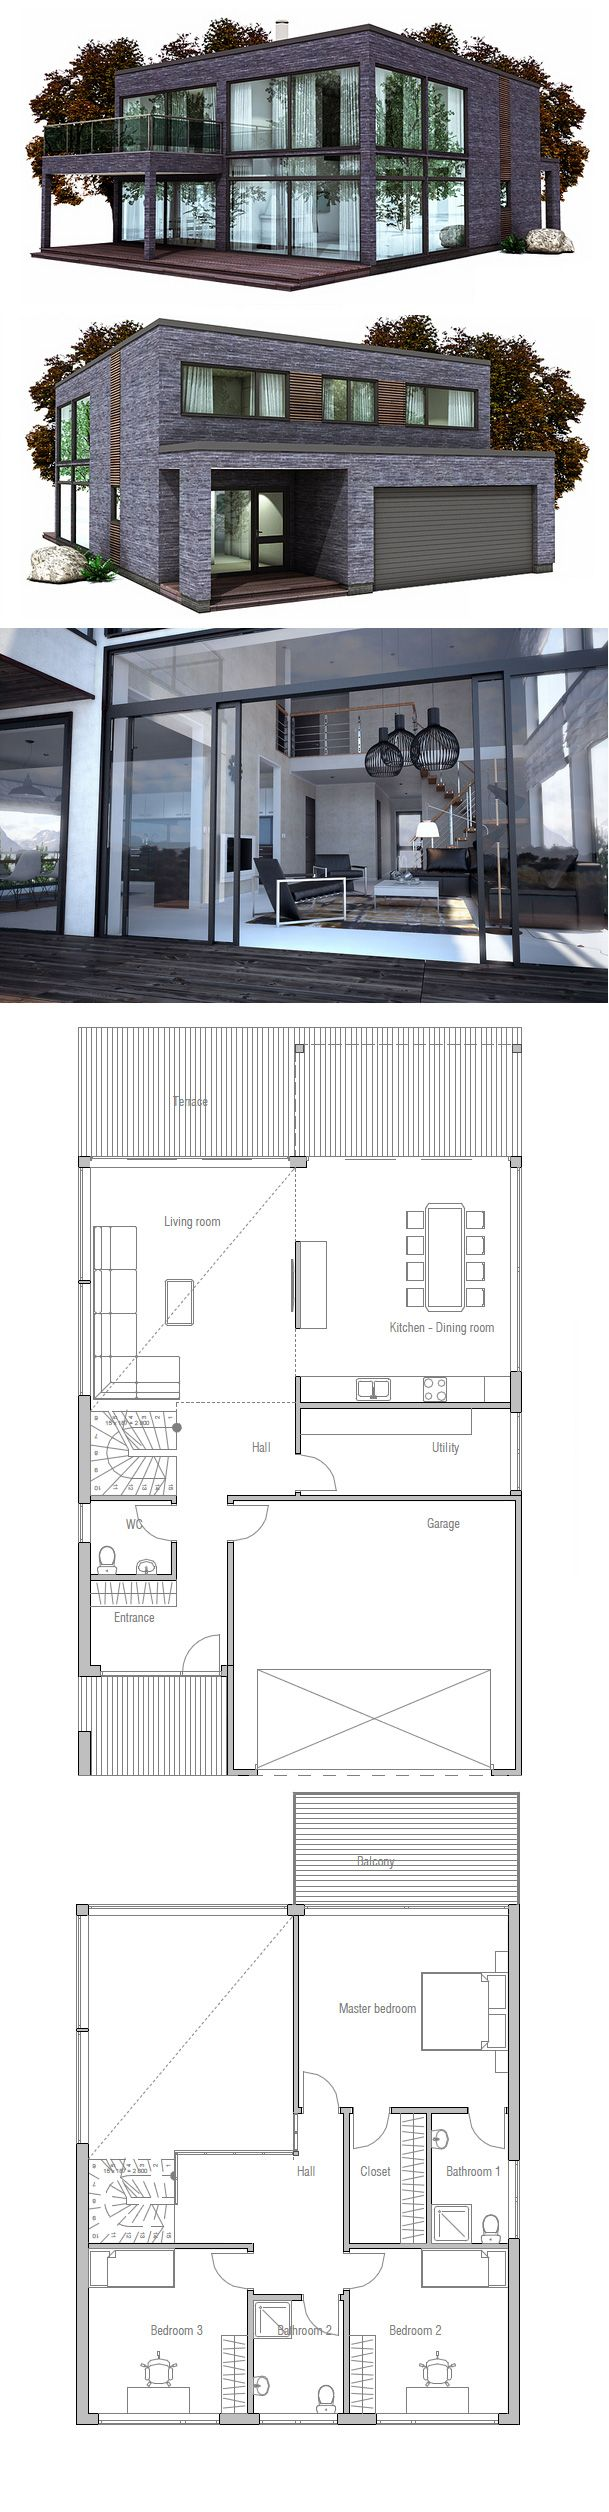 25 best ideas about modern house plans on pinterest for Best small house plans ever